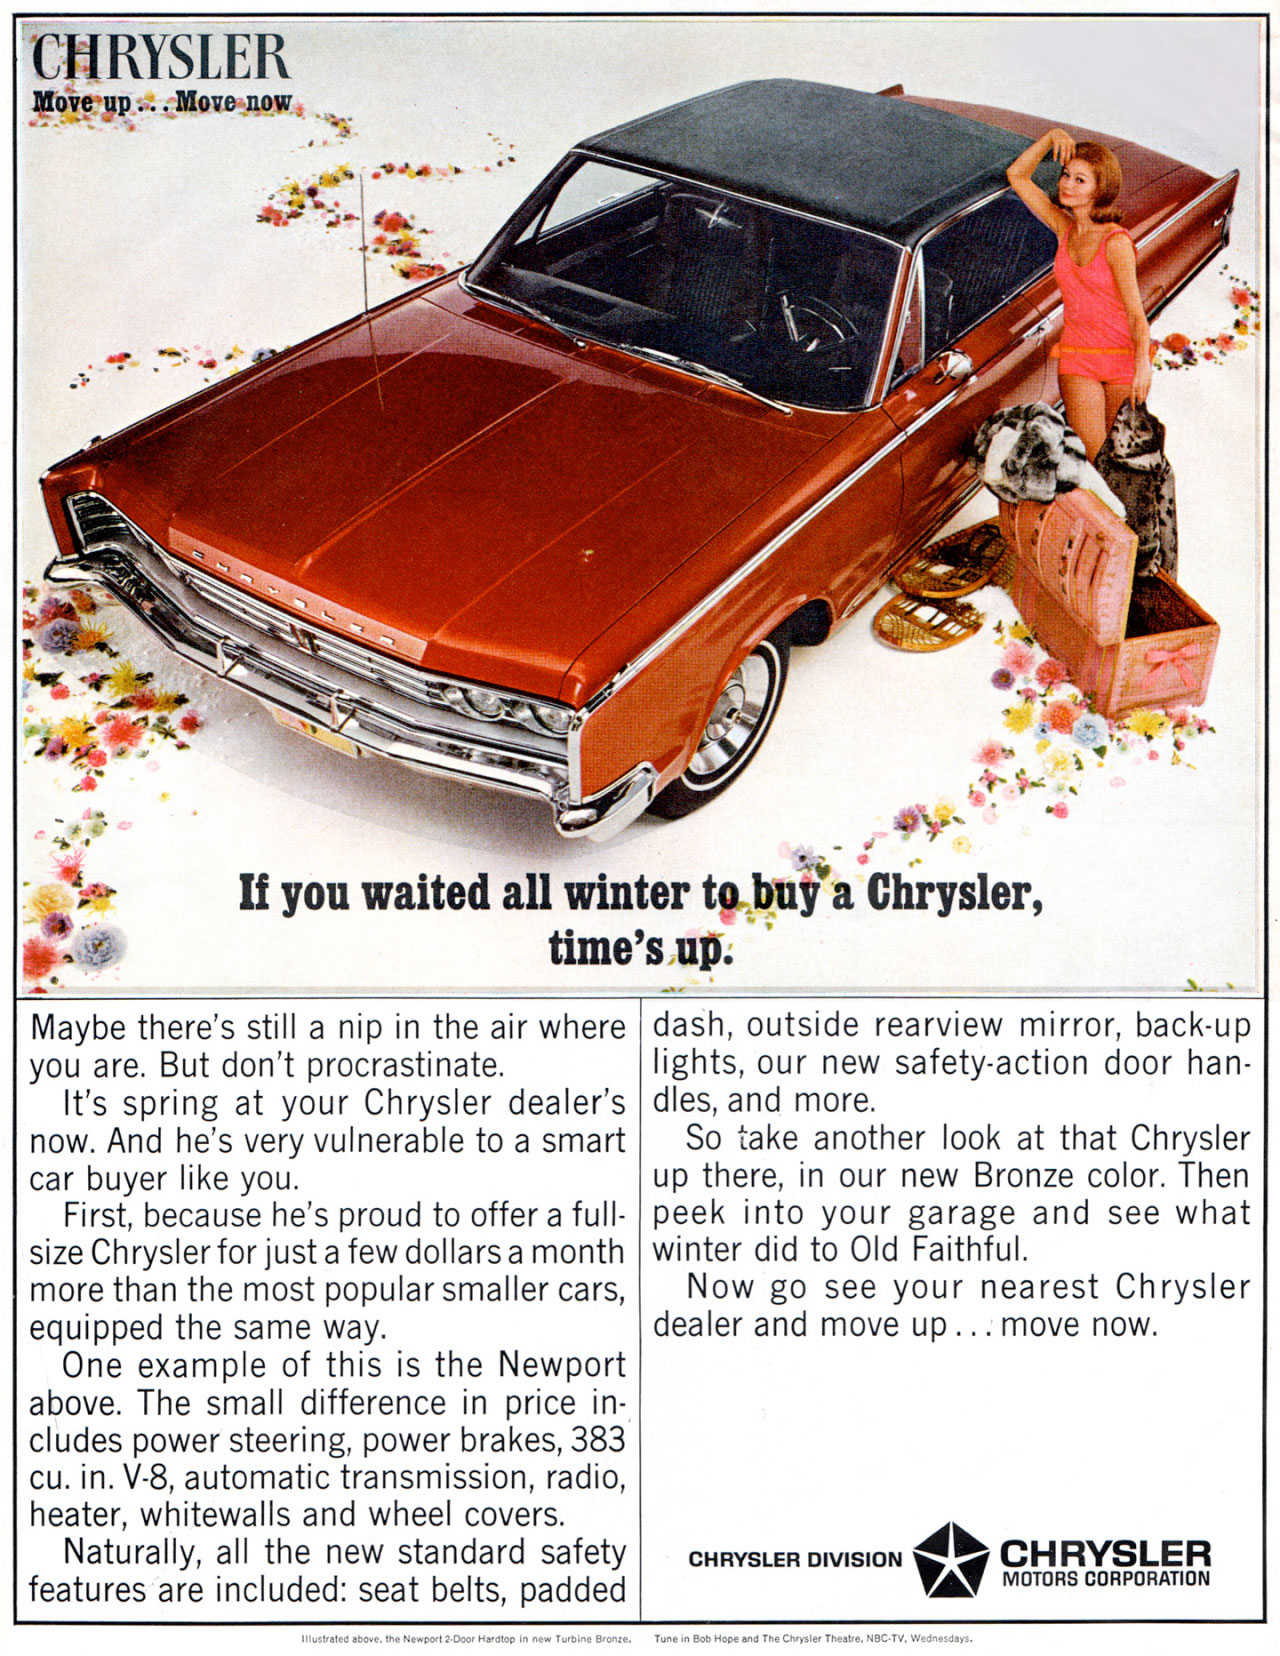 If you waited all winter to buy a Chrysler, time's up. Maybe there's still a nip in the air where you are. But don't procrastinate. It's spring at your Chrysler dealer's now. And he's very vulnerable to a smart car buyer like you. First, because he's proud to offer a full-size Chrysler for just a few dollars a month more than the most popular smaller cars, equipped the same way. One example of this is the Newport above. The small difference in price in-cludes power steering, power brakes, 383 cu. in. V-8, automatic transmission, radio, heater, whitewalls and wheel covers. Naturally, all the new standard safety features are included: seat belts, padded dash, outside rearview mirror, back-up lights, our new safety-action door han-dles, and more. So take another look at that Chrysler up there, in our new Bronze color. Then peek into your garage and see what winter did to Old Faithful. Now go see your nearest Chrysler dealer and move up ... move now. CHRYSLER DIVISION 4111.- CHRYSLER MOTORS CORPORATION